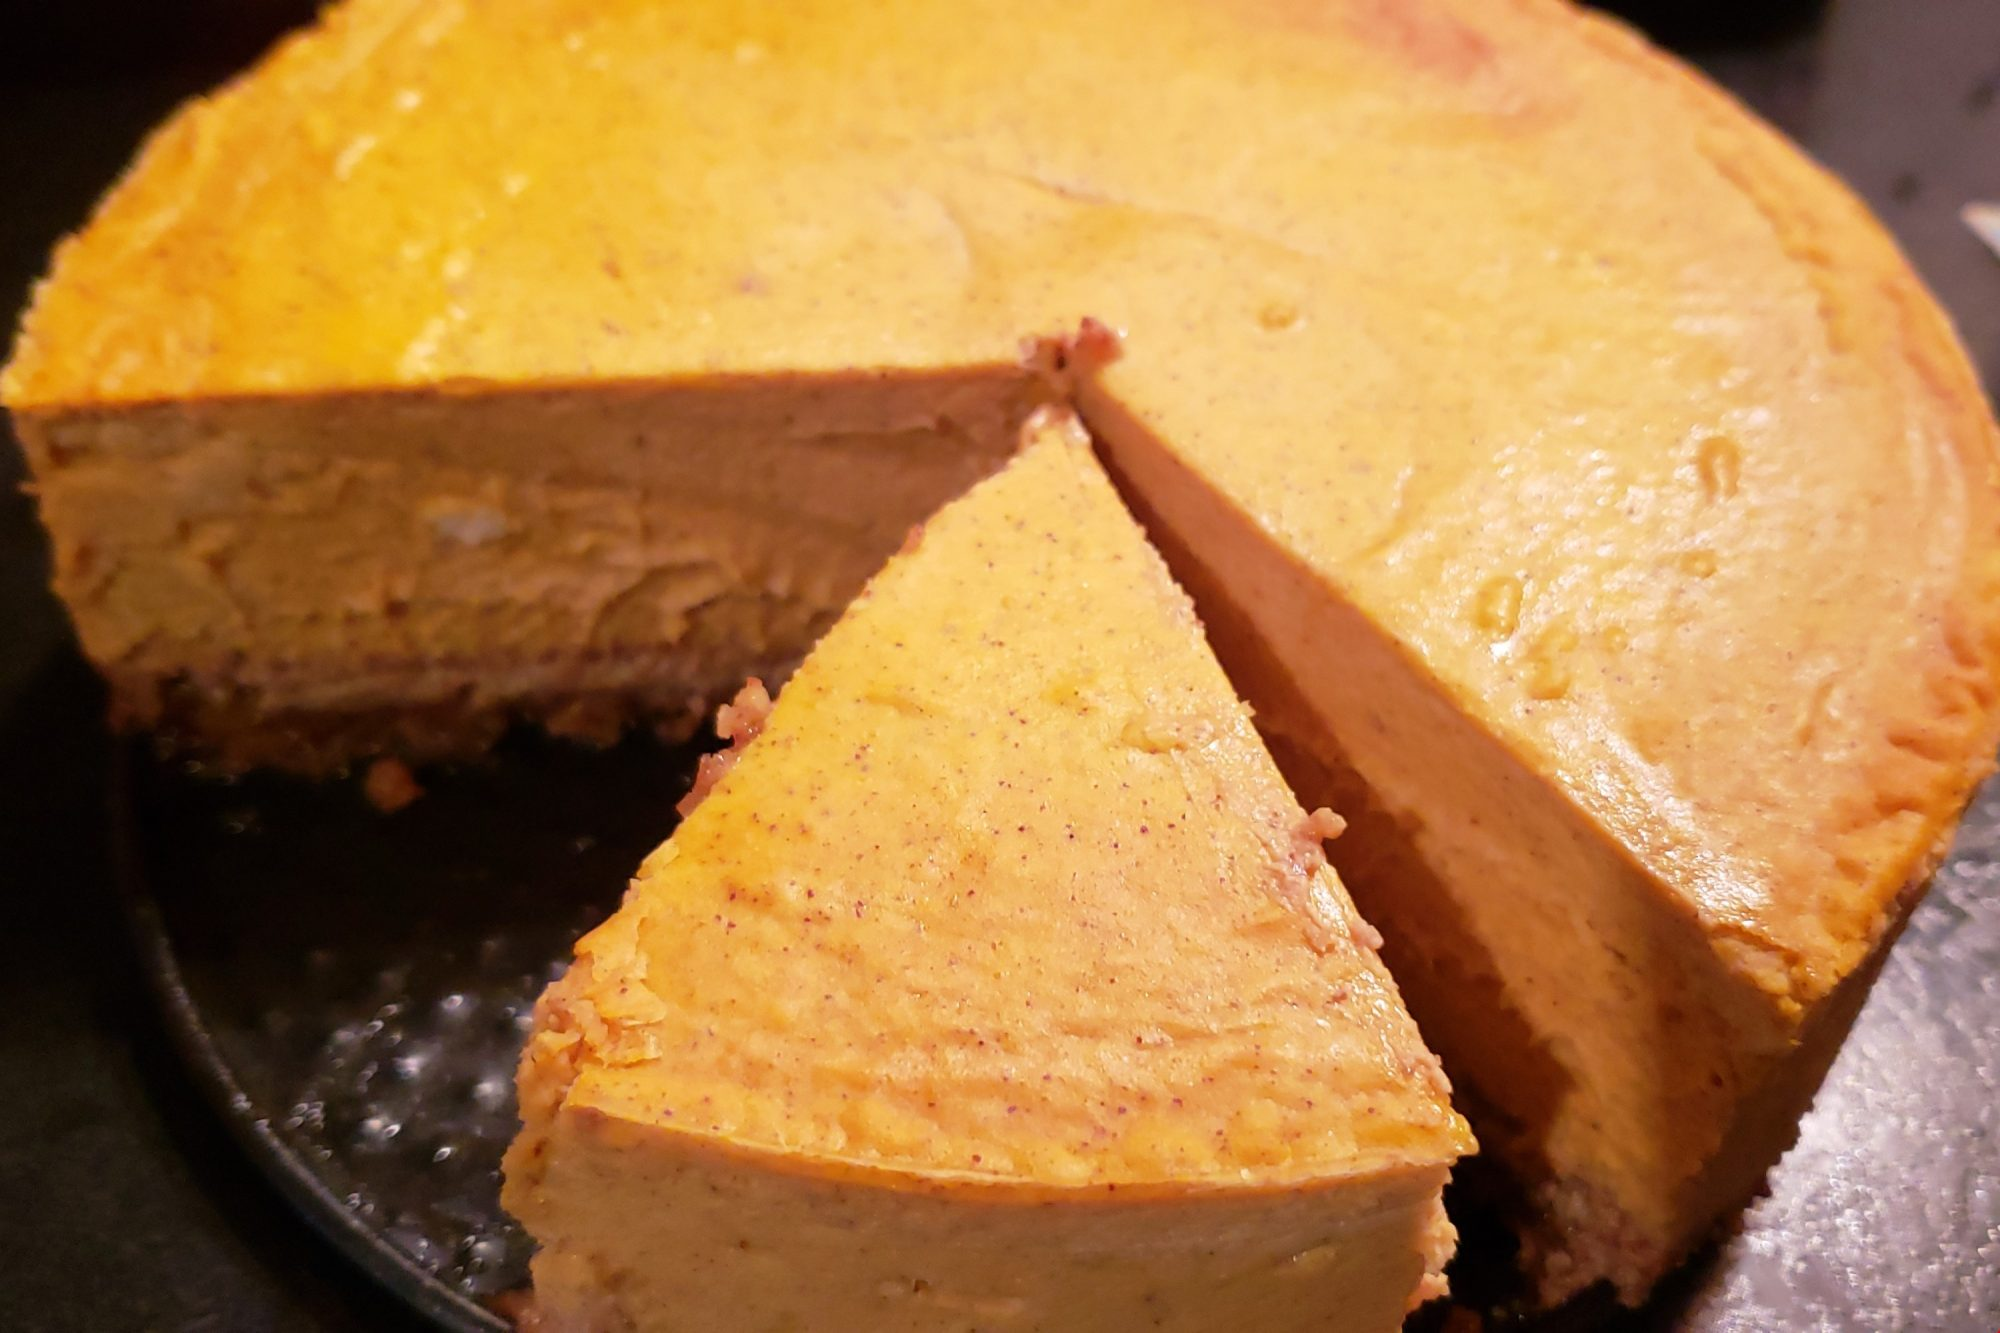 Keto Pumpkin Cheesecake with Almond Pecan Crust